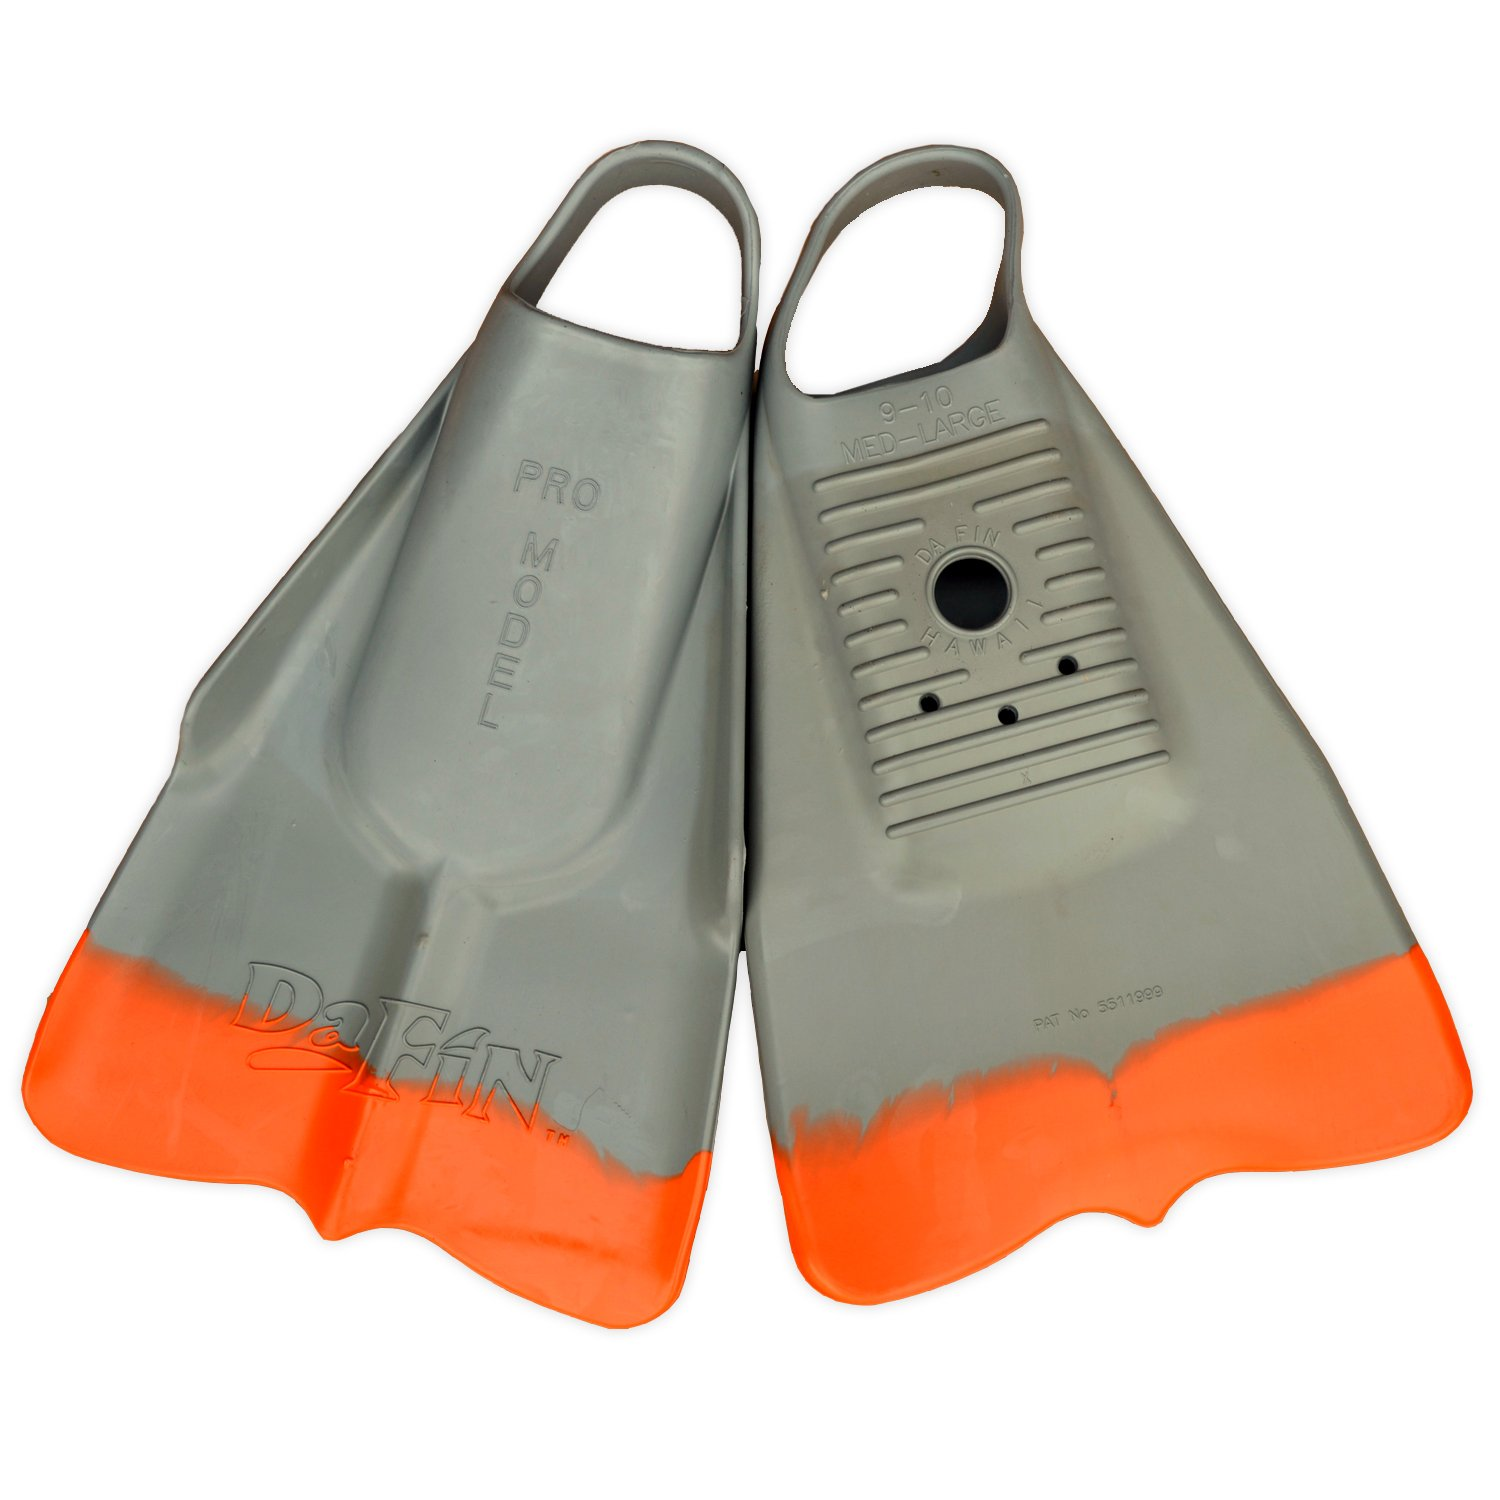 DaFin B01FY0BEW8 Swimフィン、すべてのサイズ、すべての色 Small B01FY0BEW8 Gray/Orange Small Gray/Orange Small|Gray/Orange, シロイシ:88baccf3 --- ijpba.info